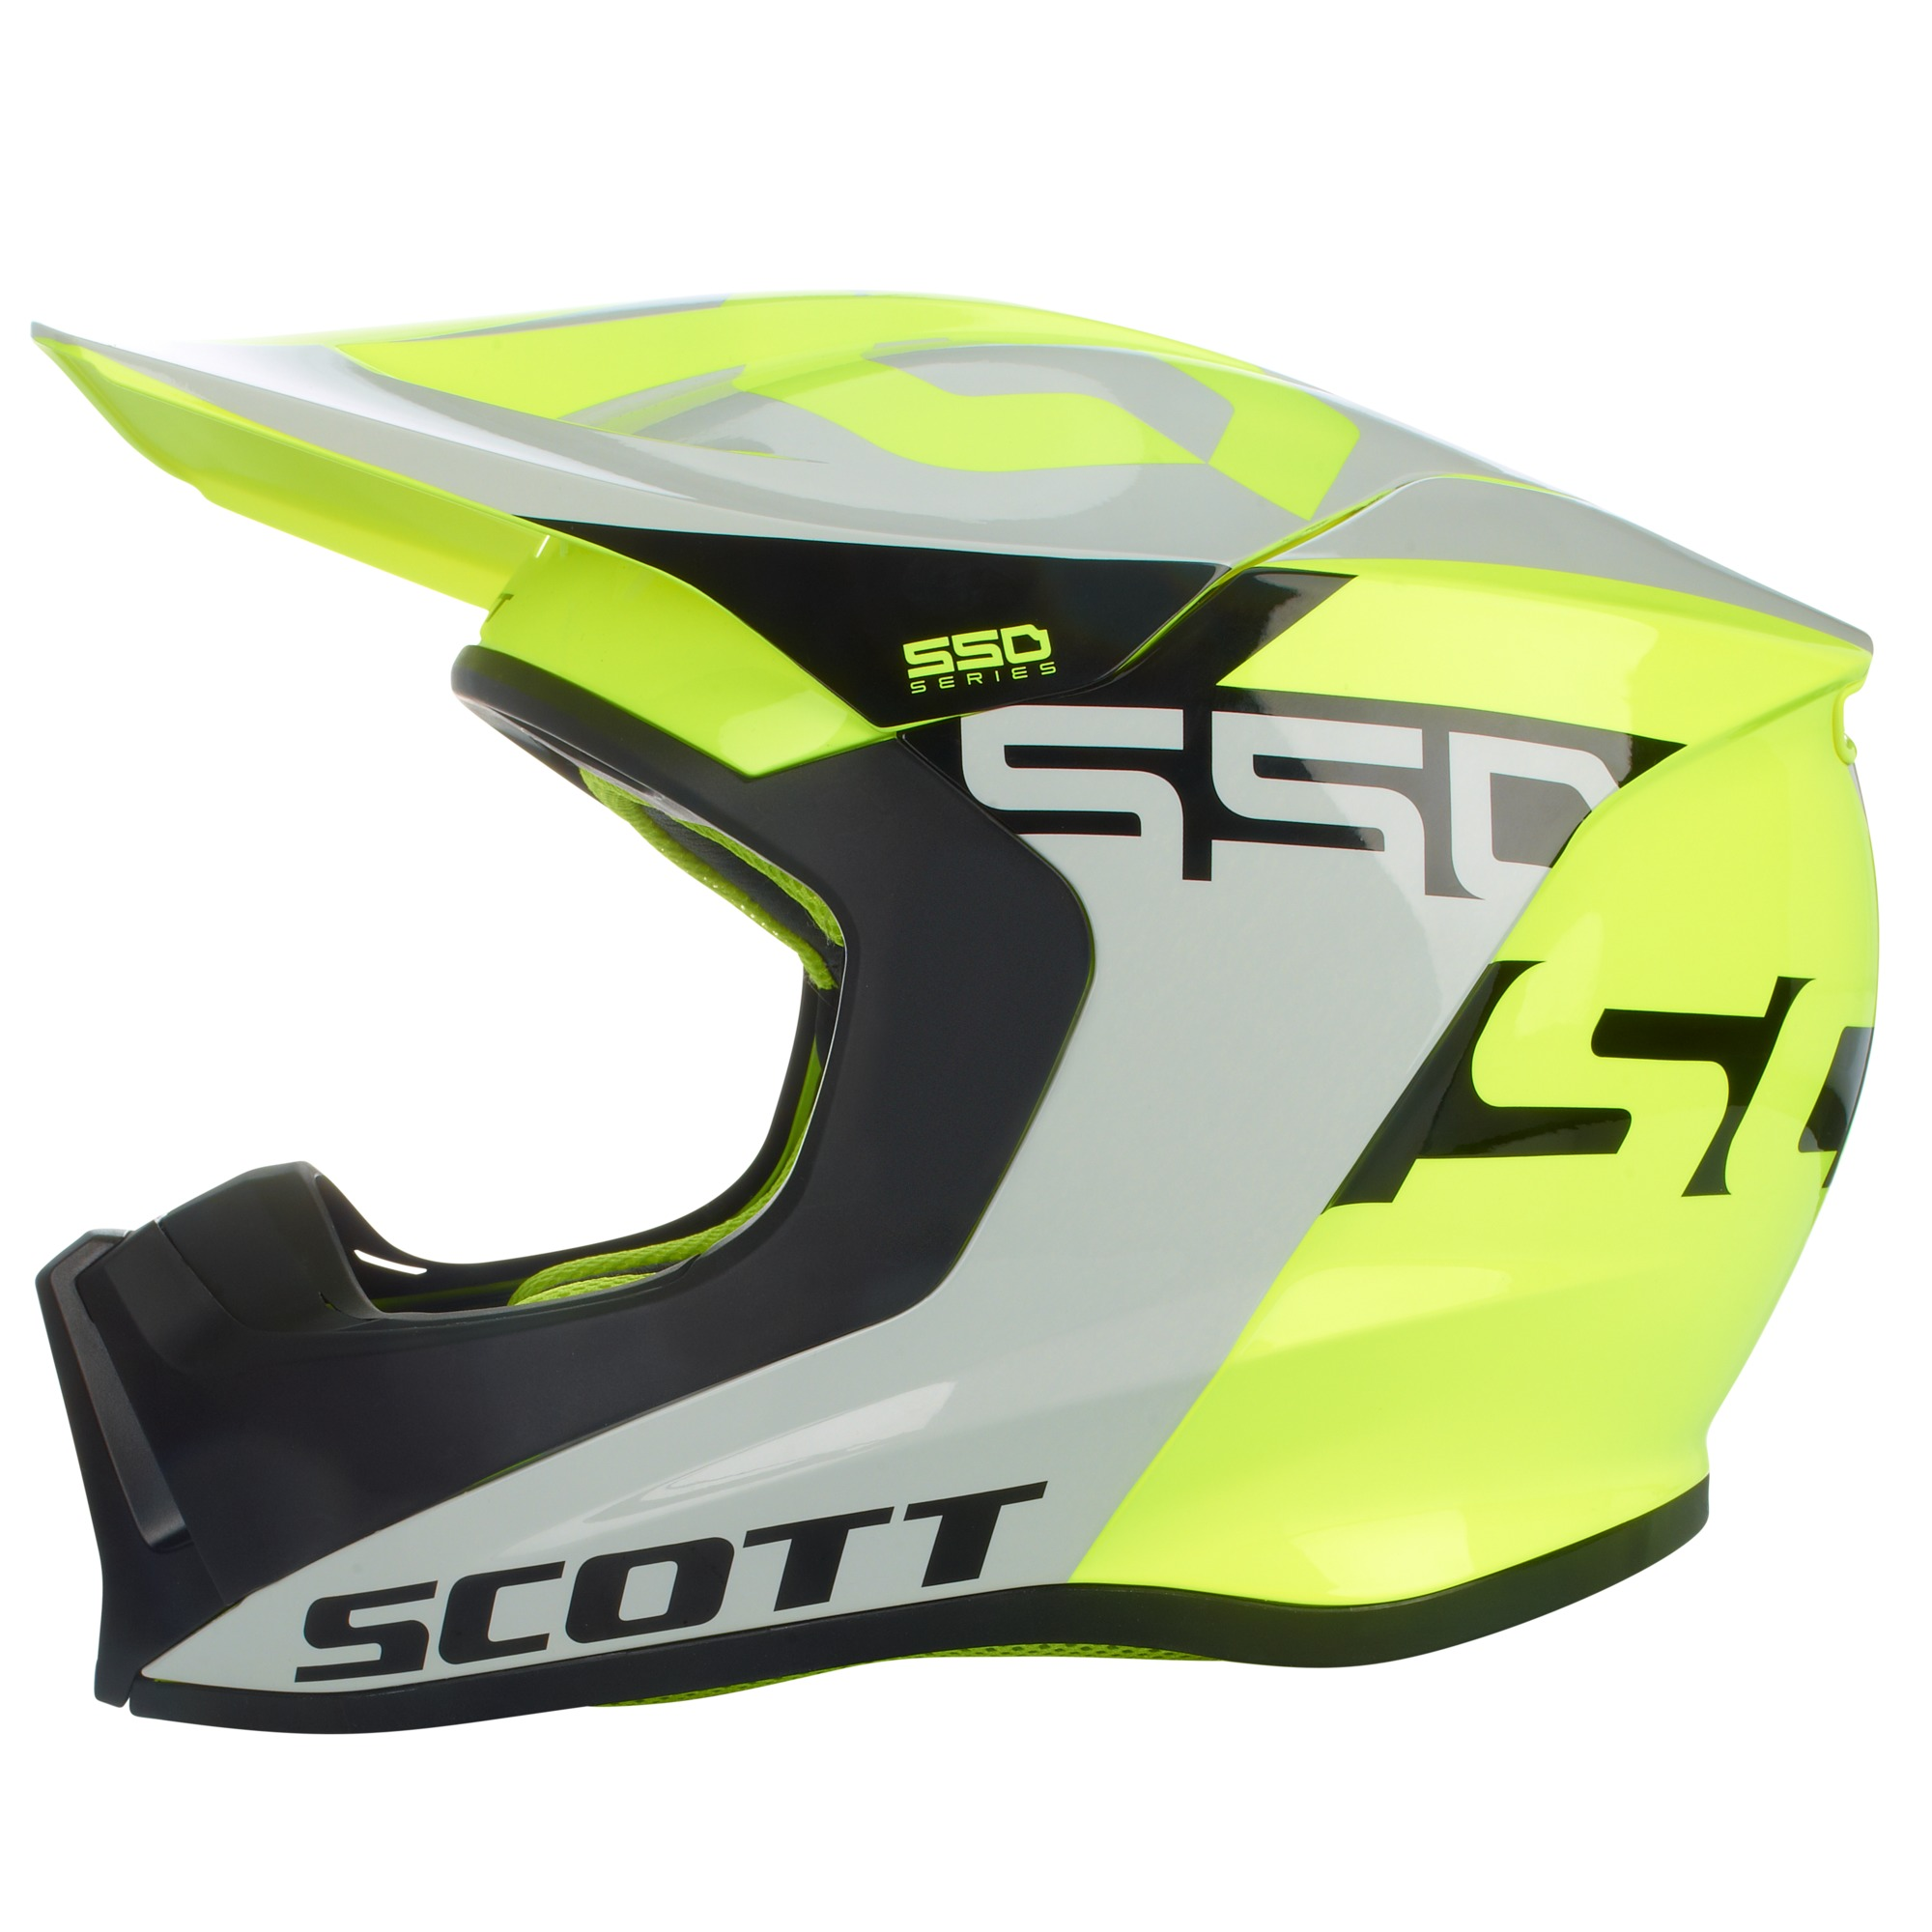 SCOTT 550 Woodblock ECE Helmet